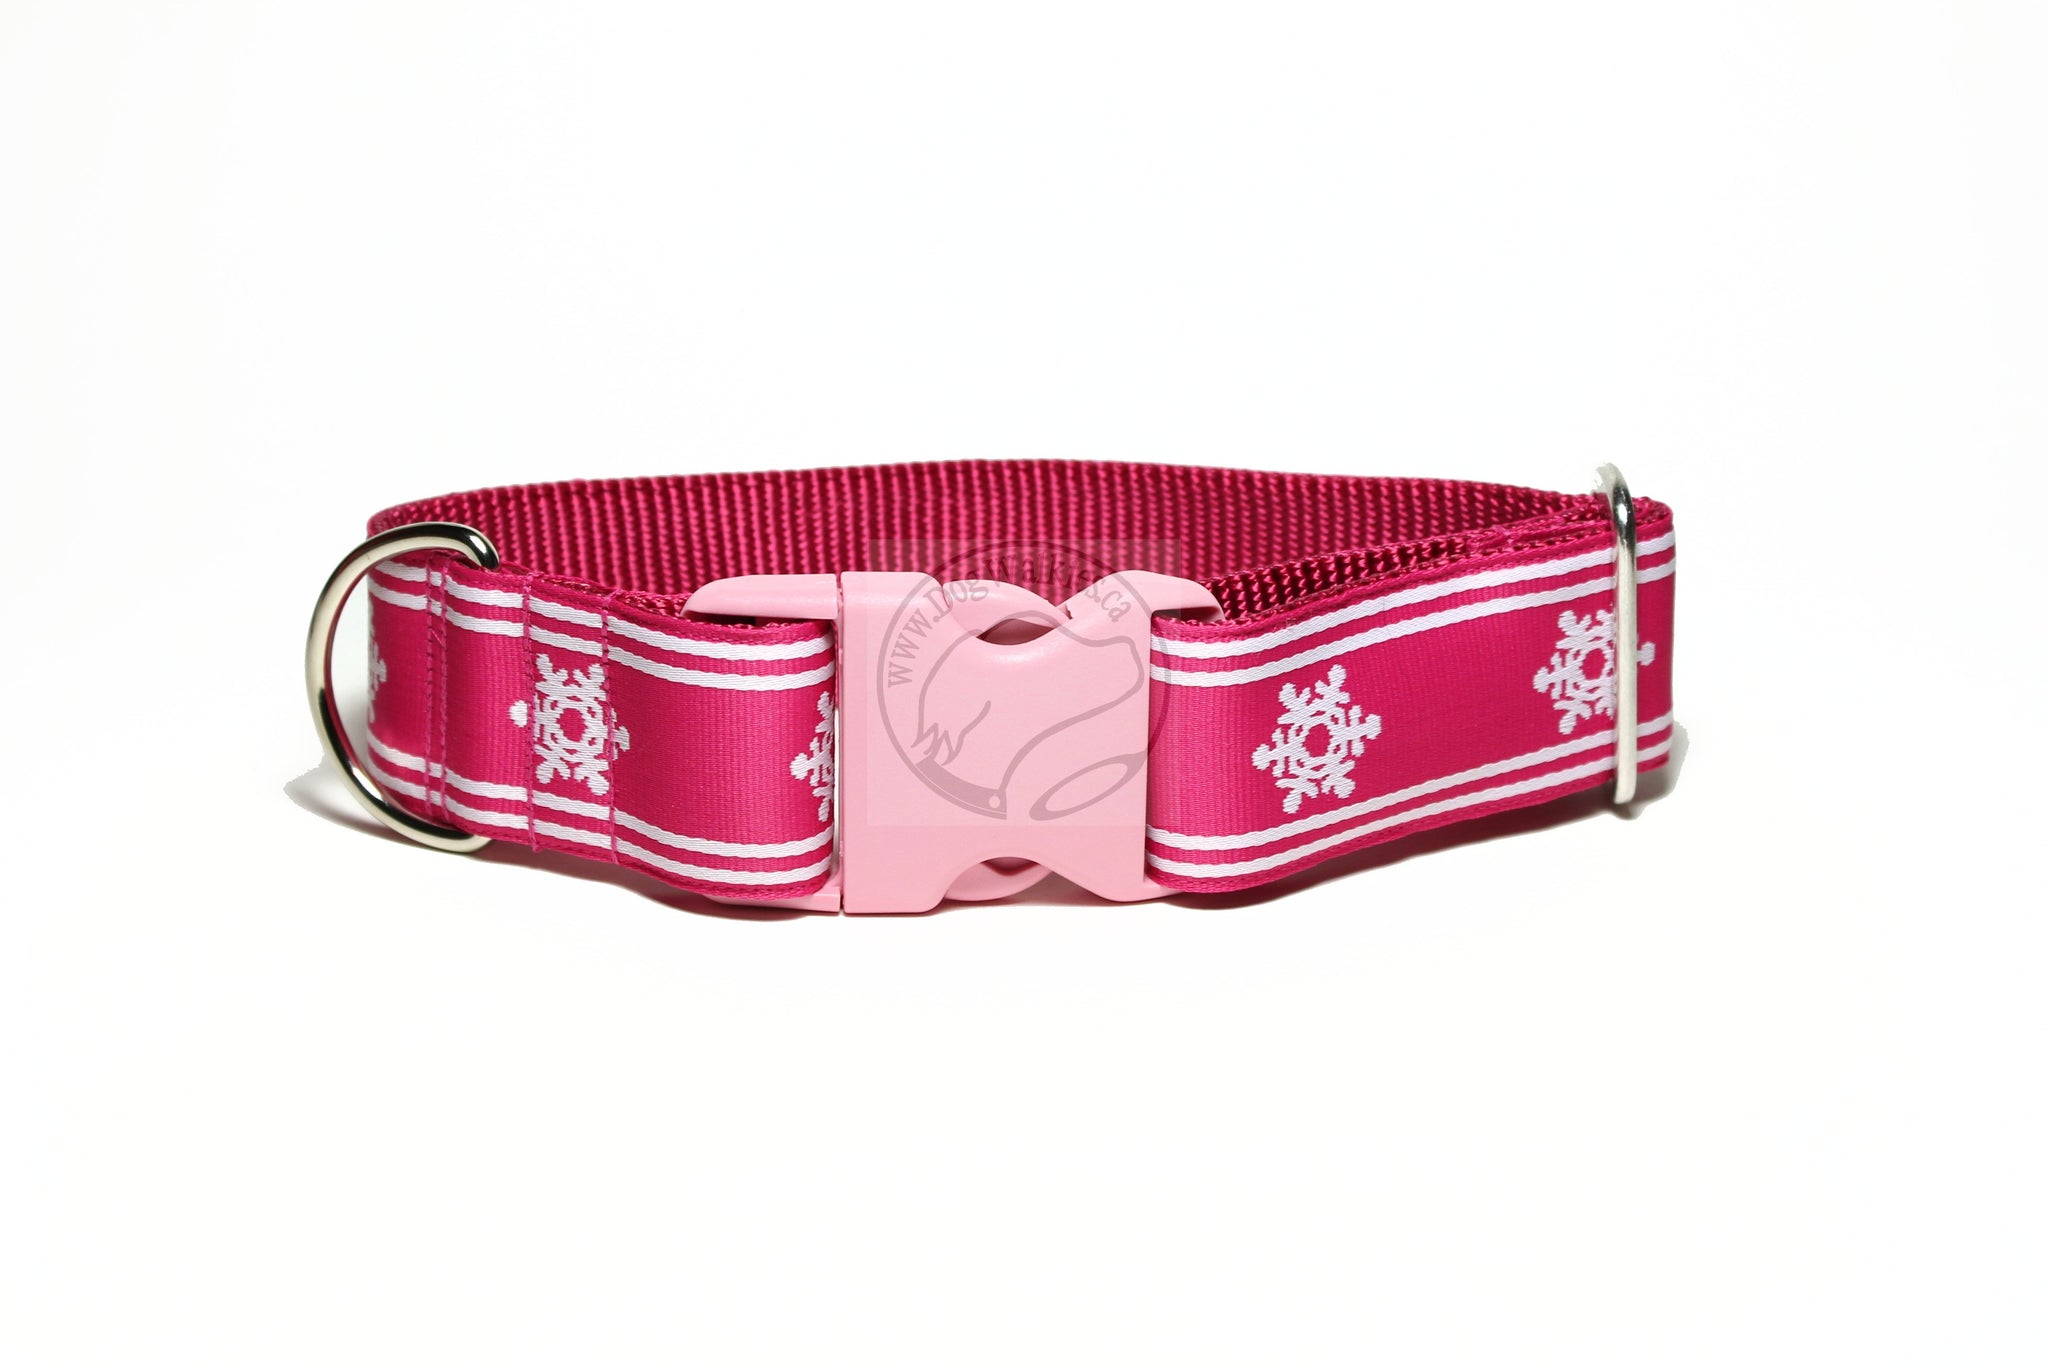 Winter Wonderland in Black, Pink or Blue - wide dog collar